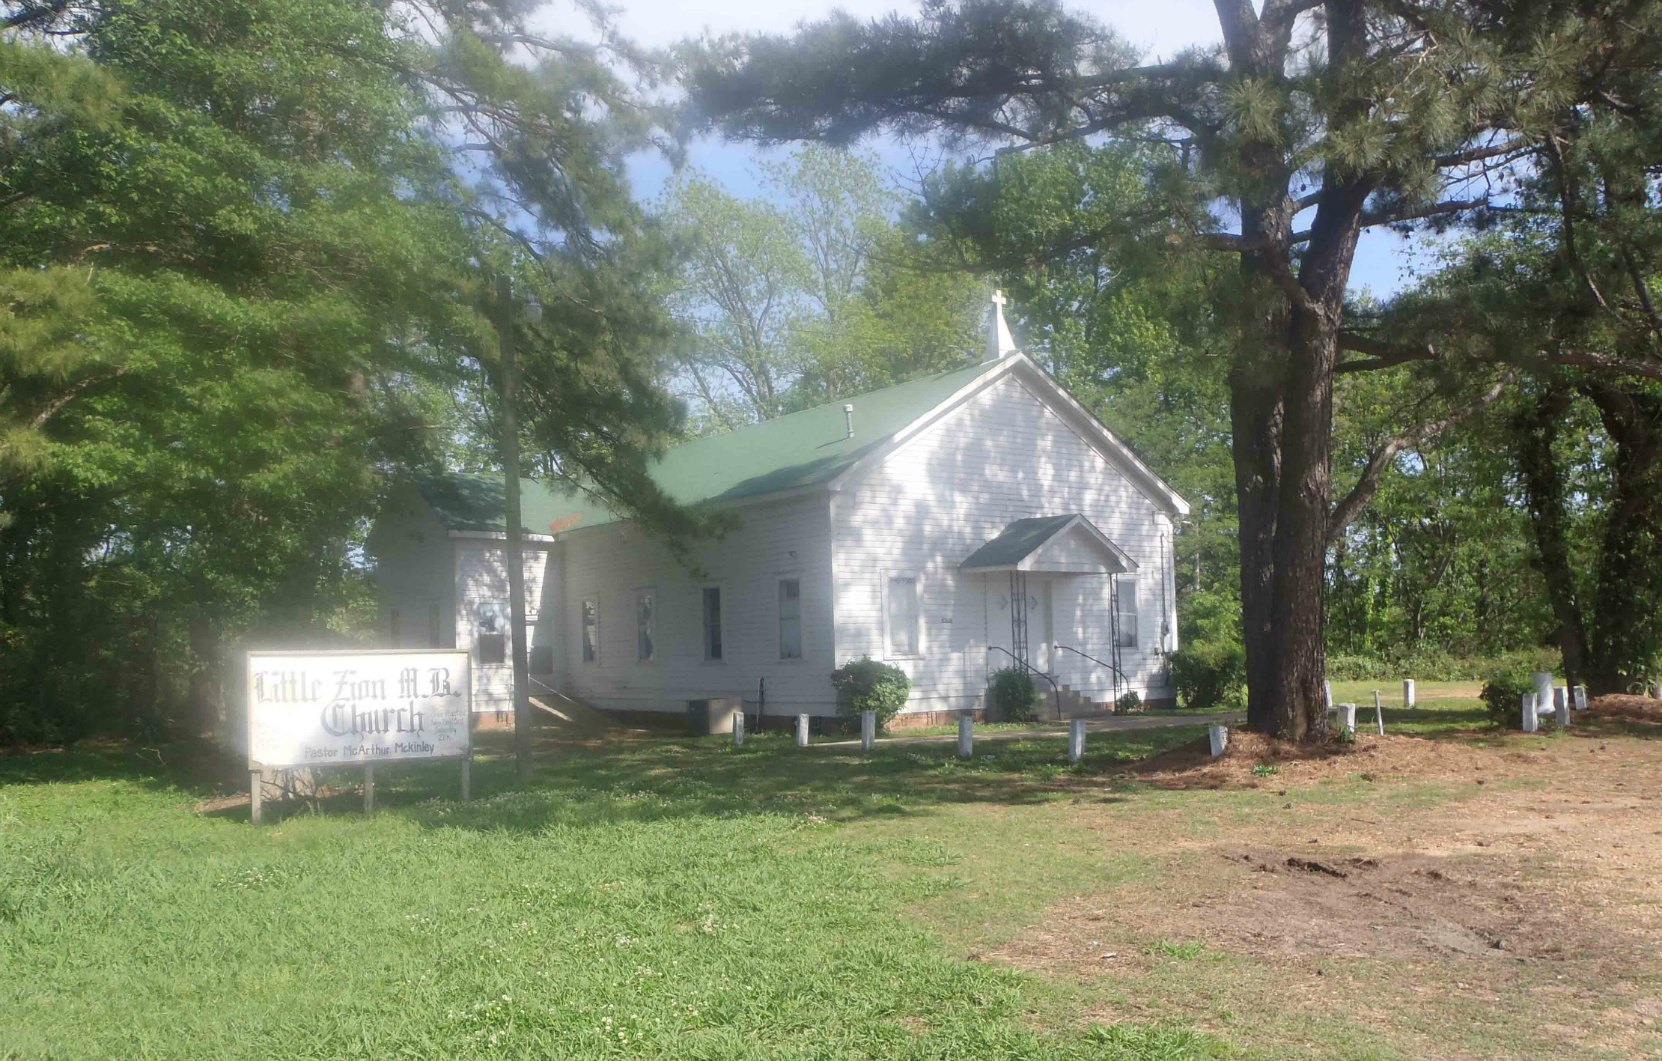 Little Zion Missionary Baptist Church, near Money, Leflore County, Mississippi, site of one of three reputed Robert Johnson grave sites.